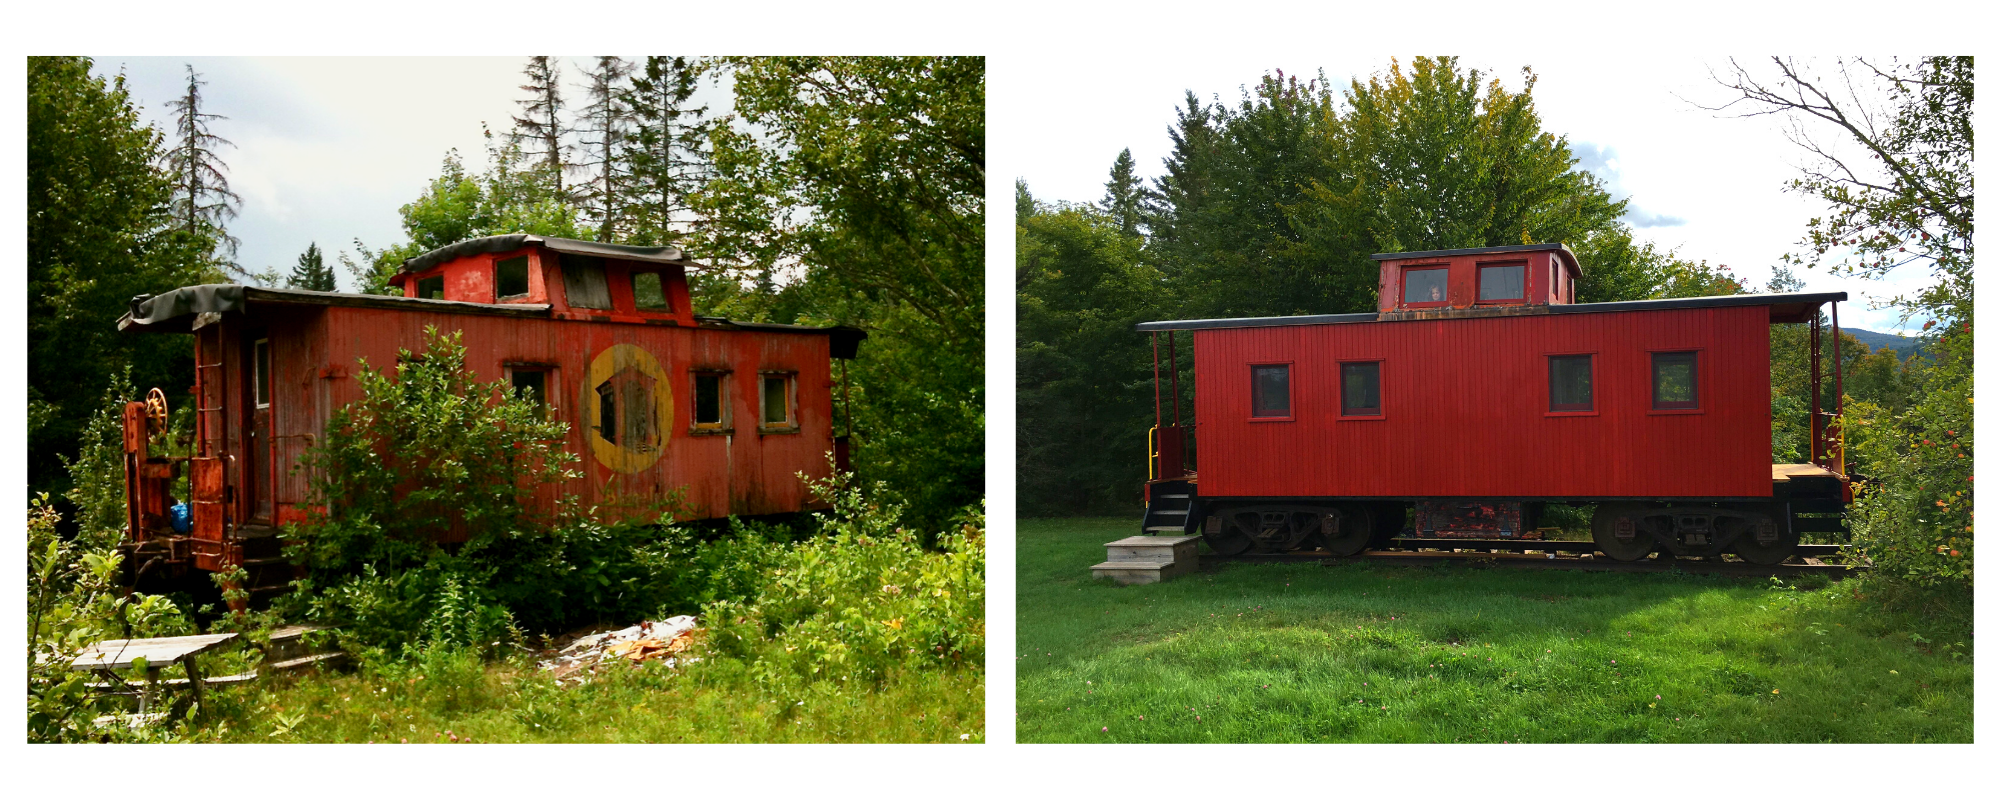 Caboose before and after